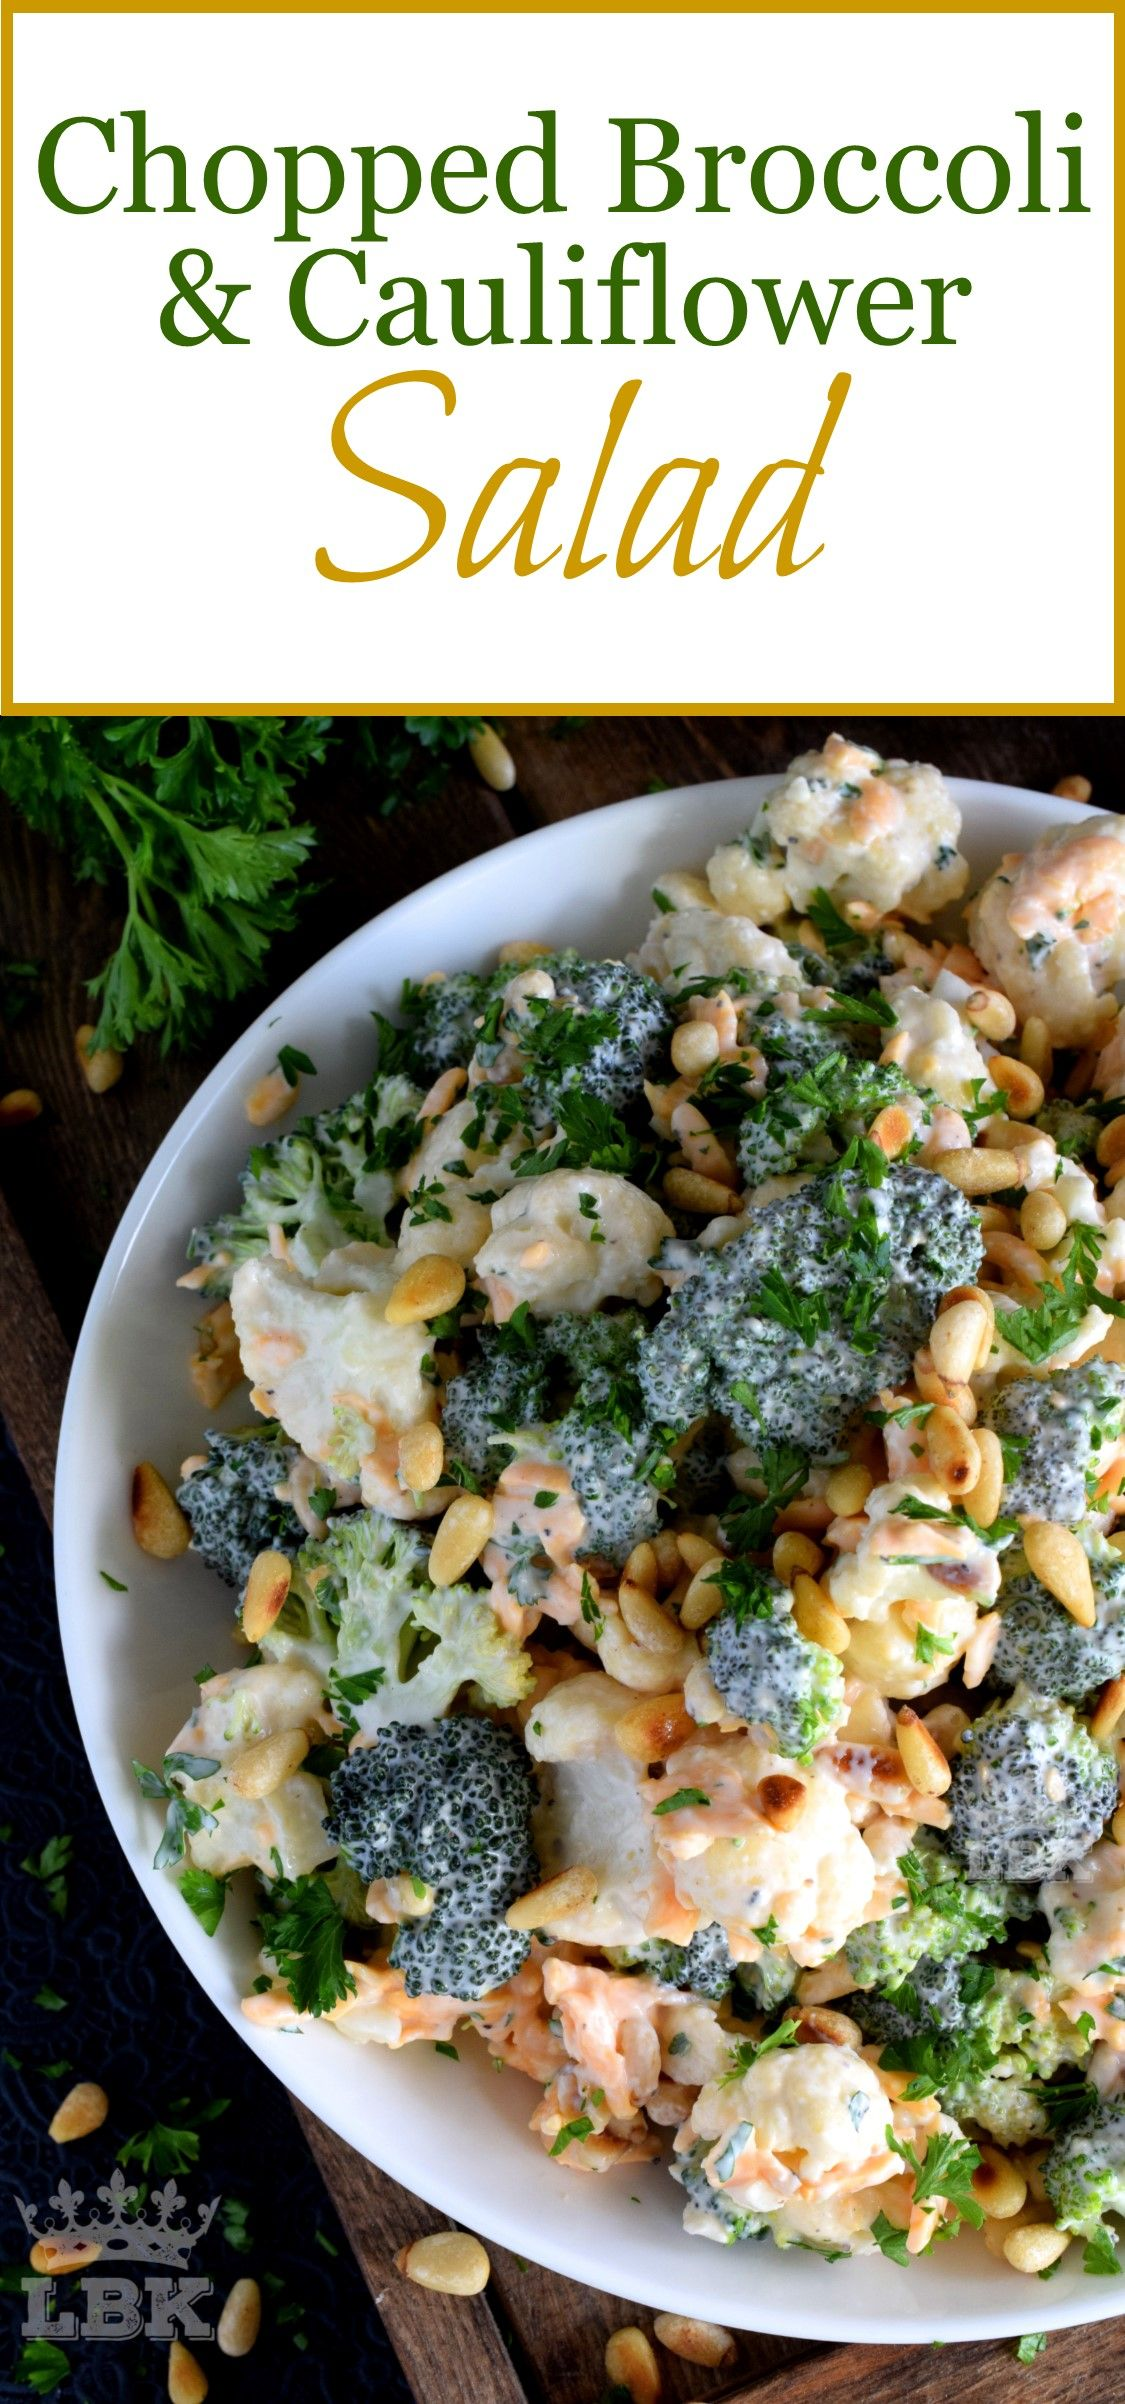 CHOPPED BROCCOLI AND CAULIFLOWER SALAD VEGETABLES NEVER TASTED SO